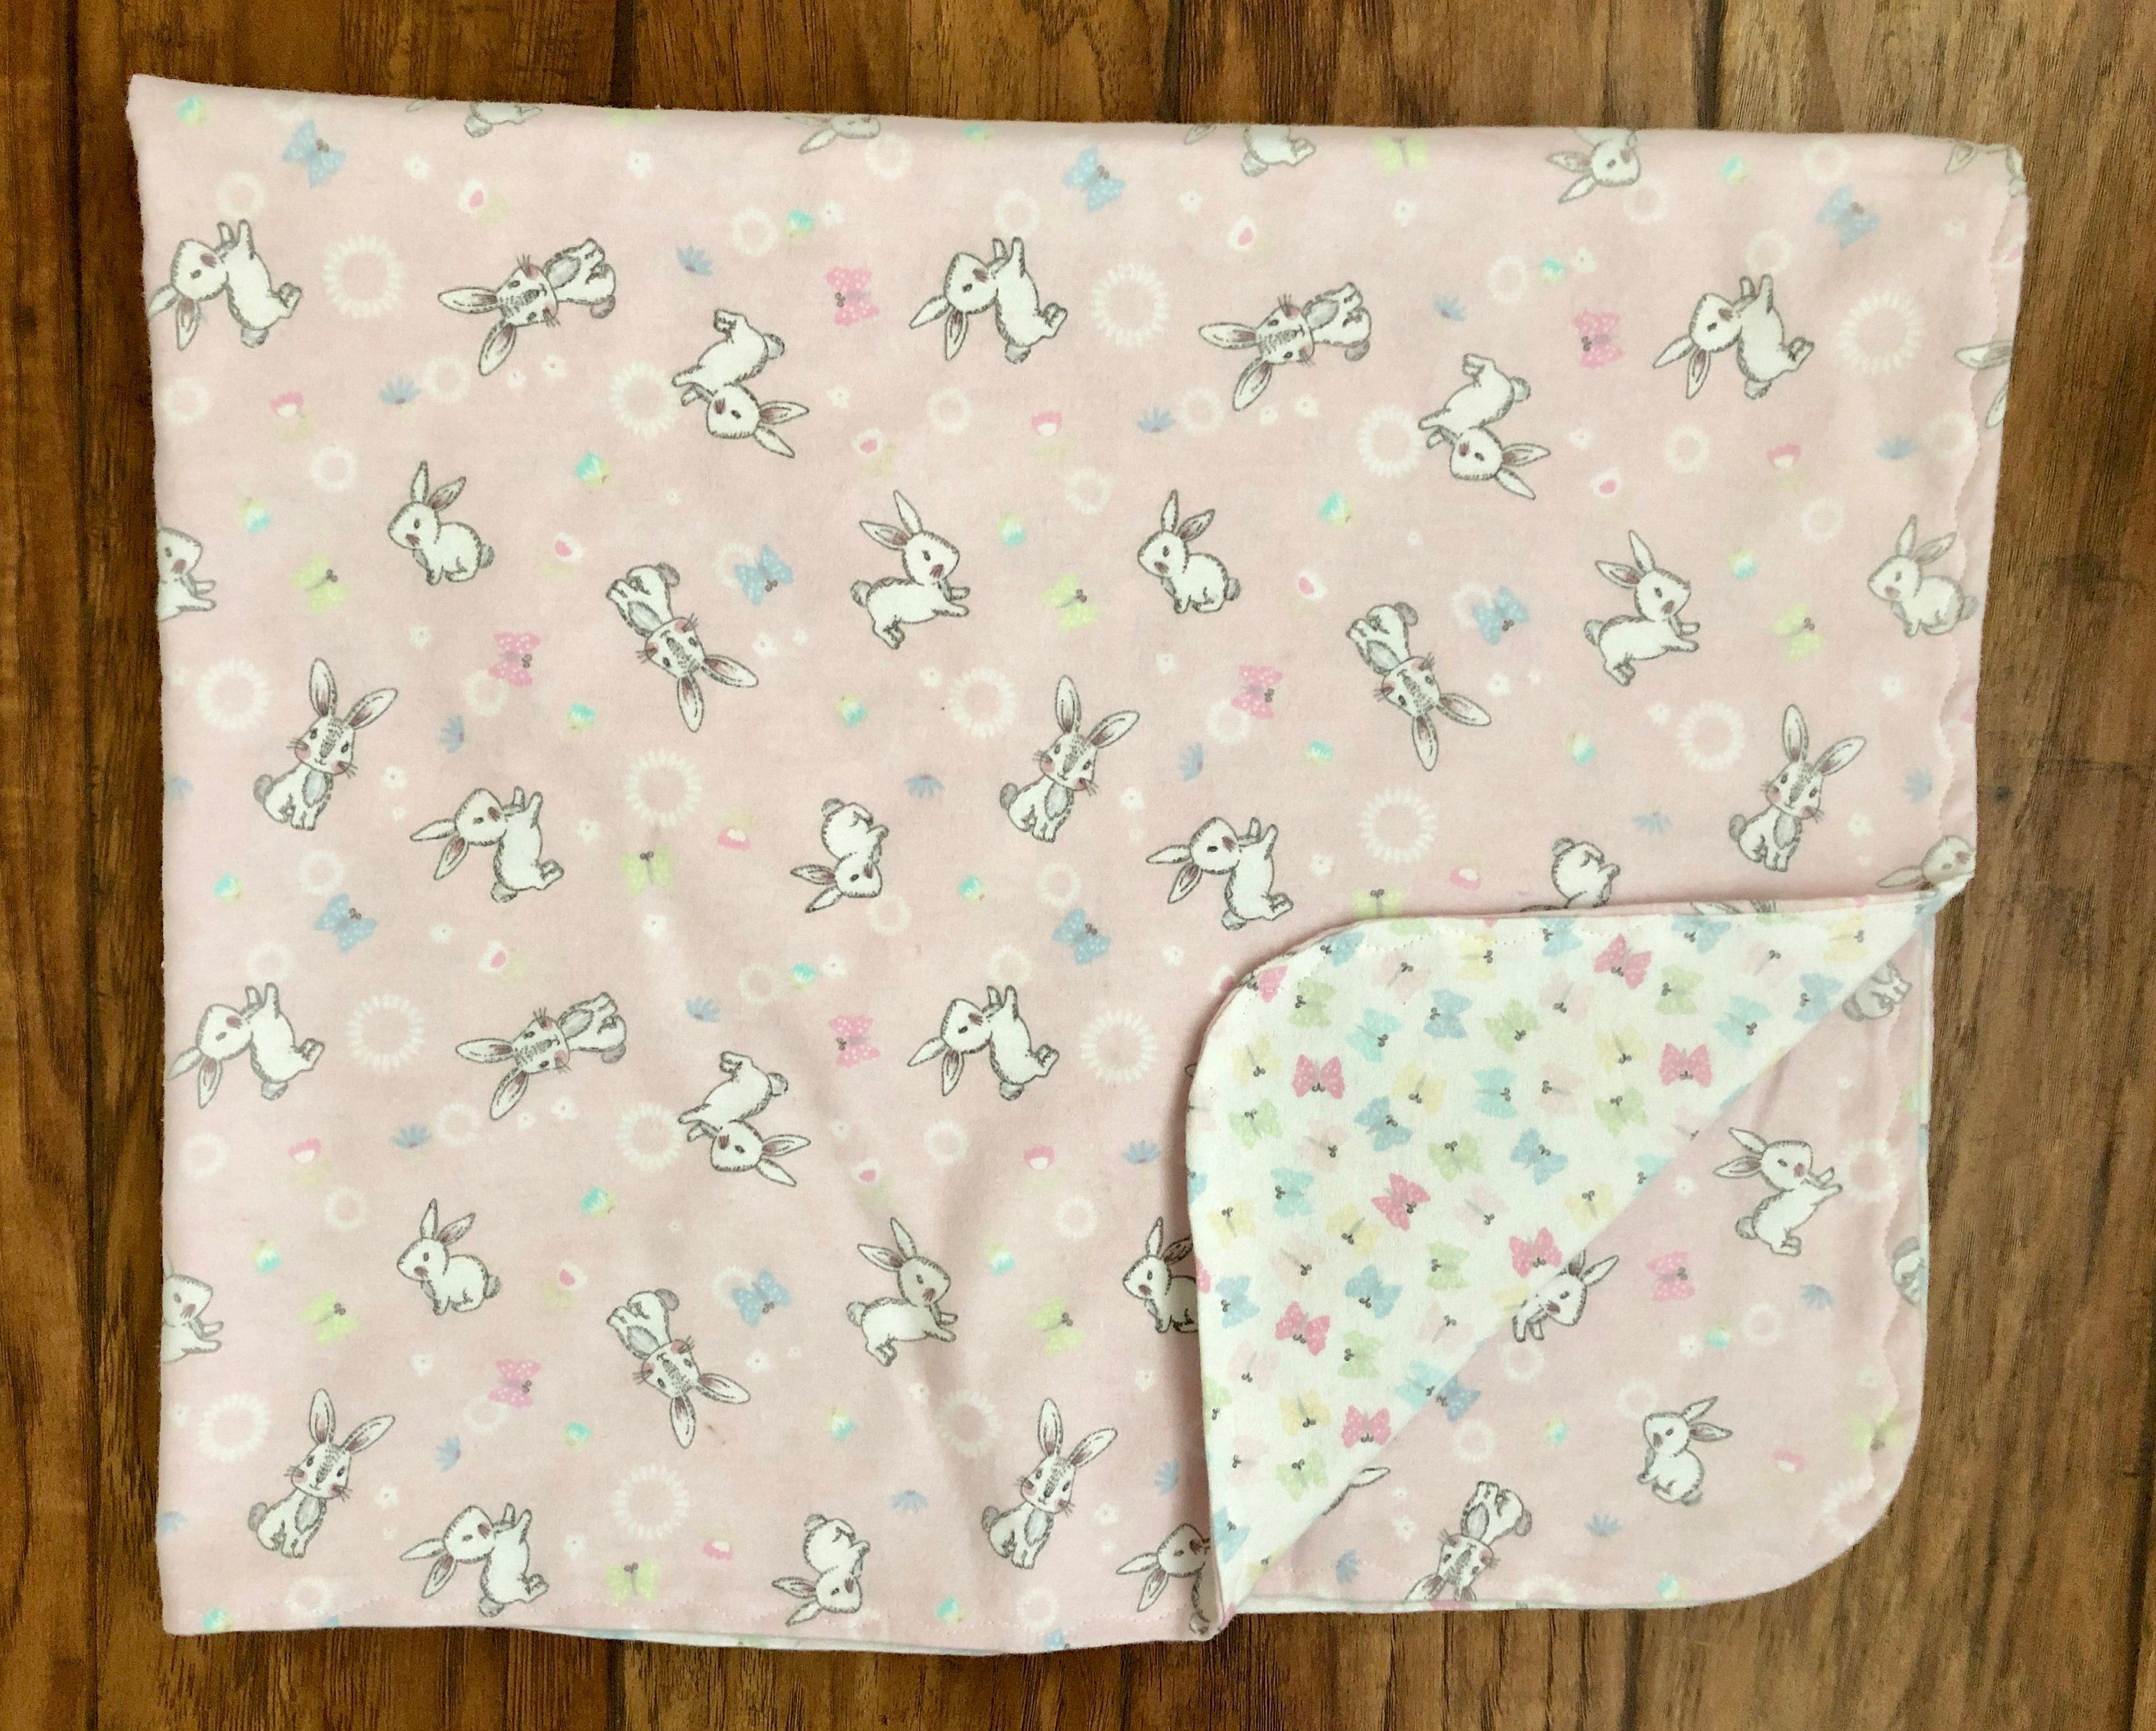 Bunnies And Butterflies Flannel Baby Blanket Double Sided Flannel Blanket Baby Blanket Bunny Blanke Handmade Baby Gifts Handmade Blanket Handmade Baby Blankets